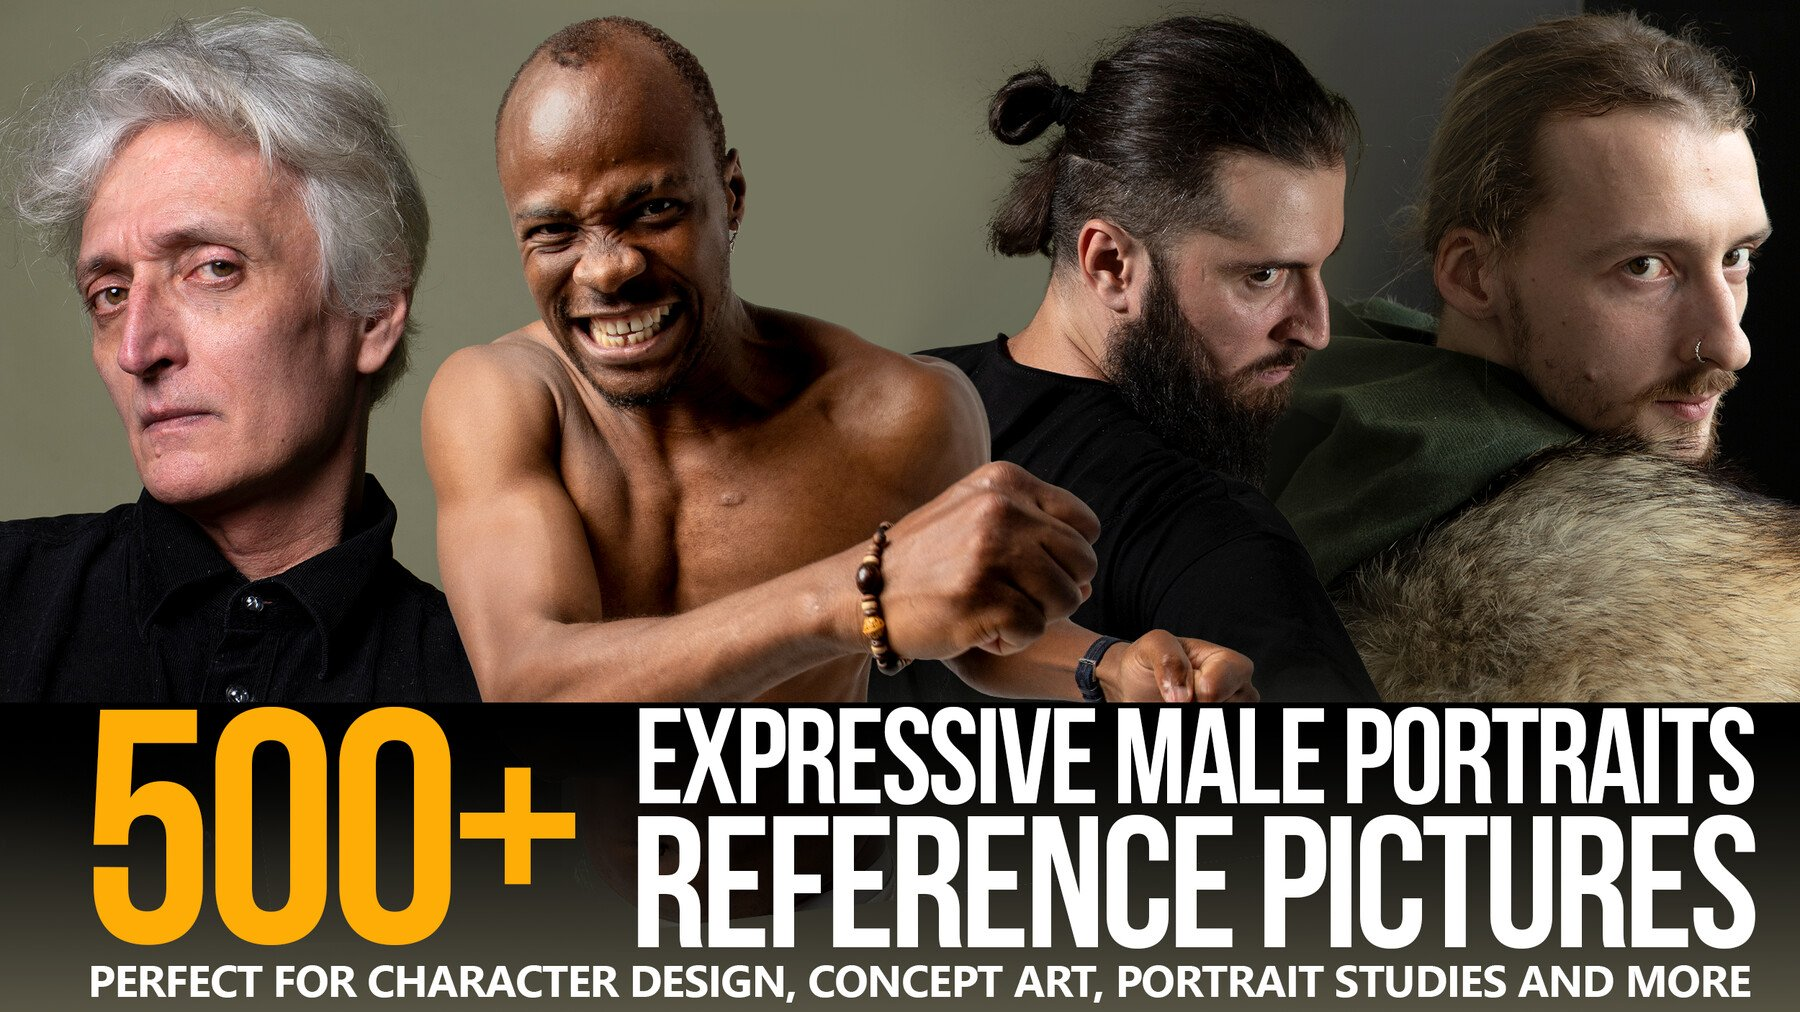 ArtStation - 500+ Expressive Male Portraits Reference Pictures | Resources